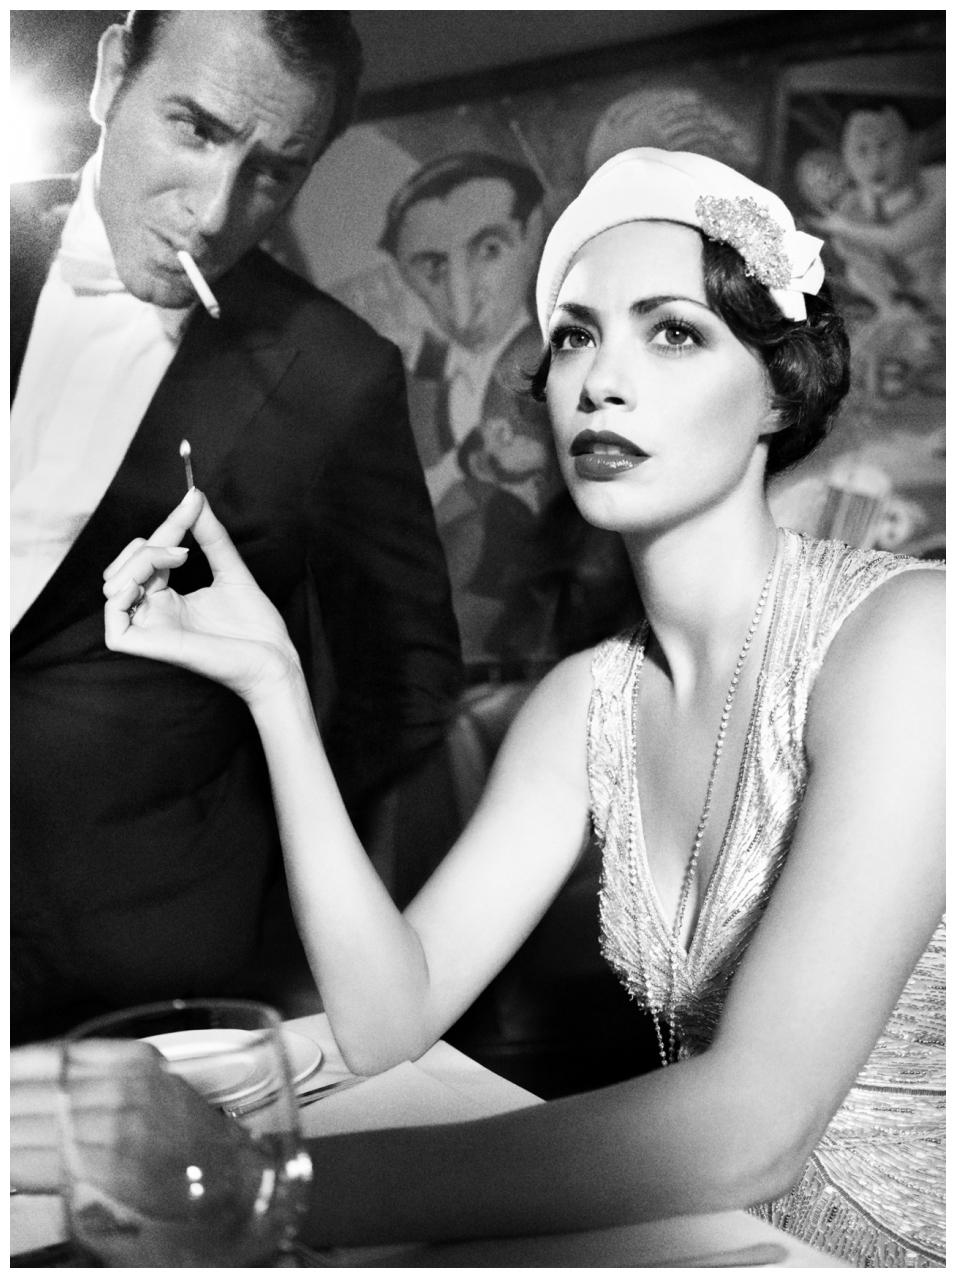 http://pleasurephotoroom.files.wordpress.com/2012/11/berenice-bejo-photo-peter-iovino-the-artist-2011.jpg